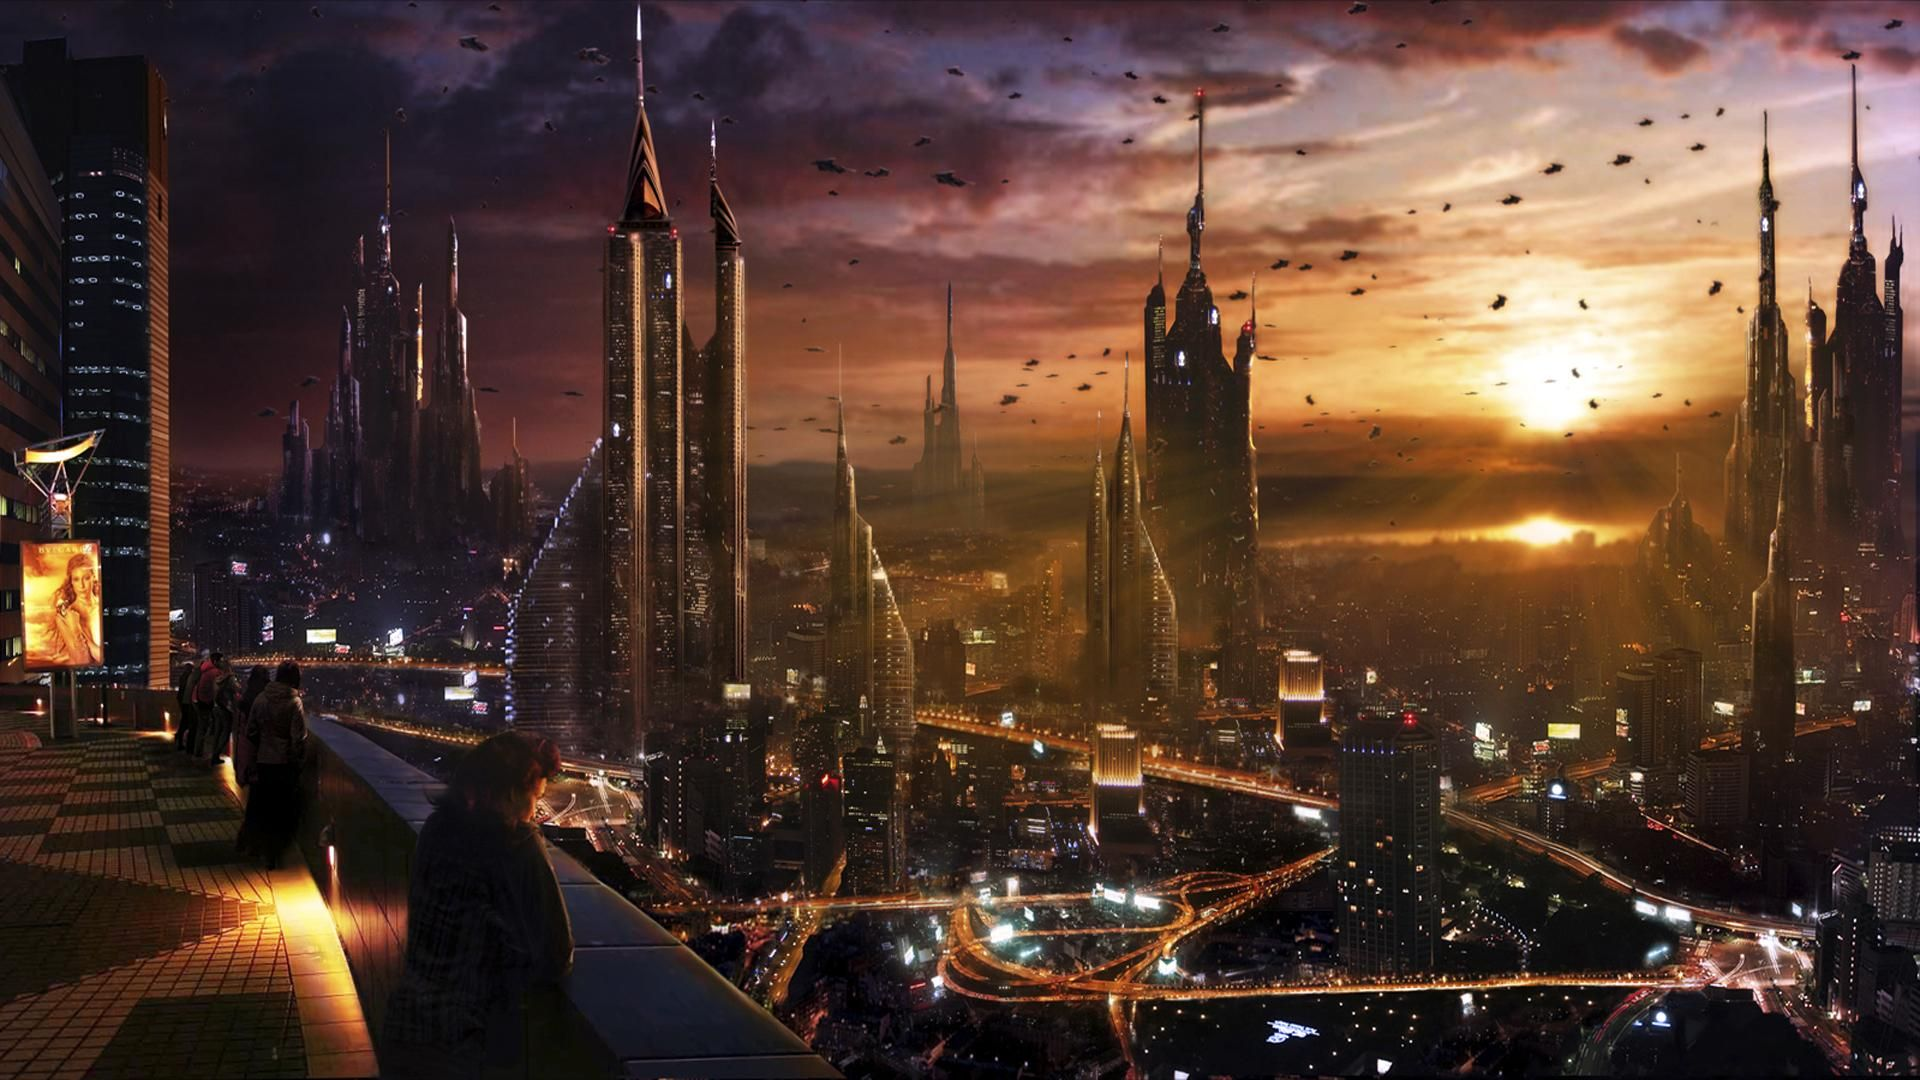 4k Futuristic Wallpaper Google Search Achtergrond